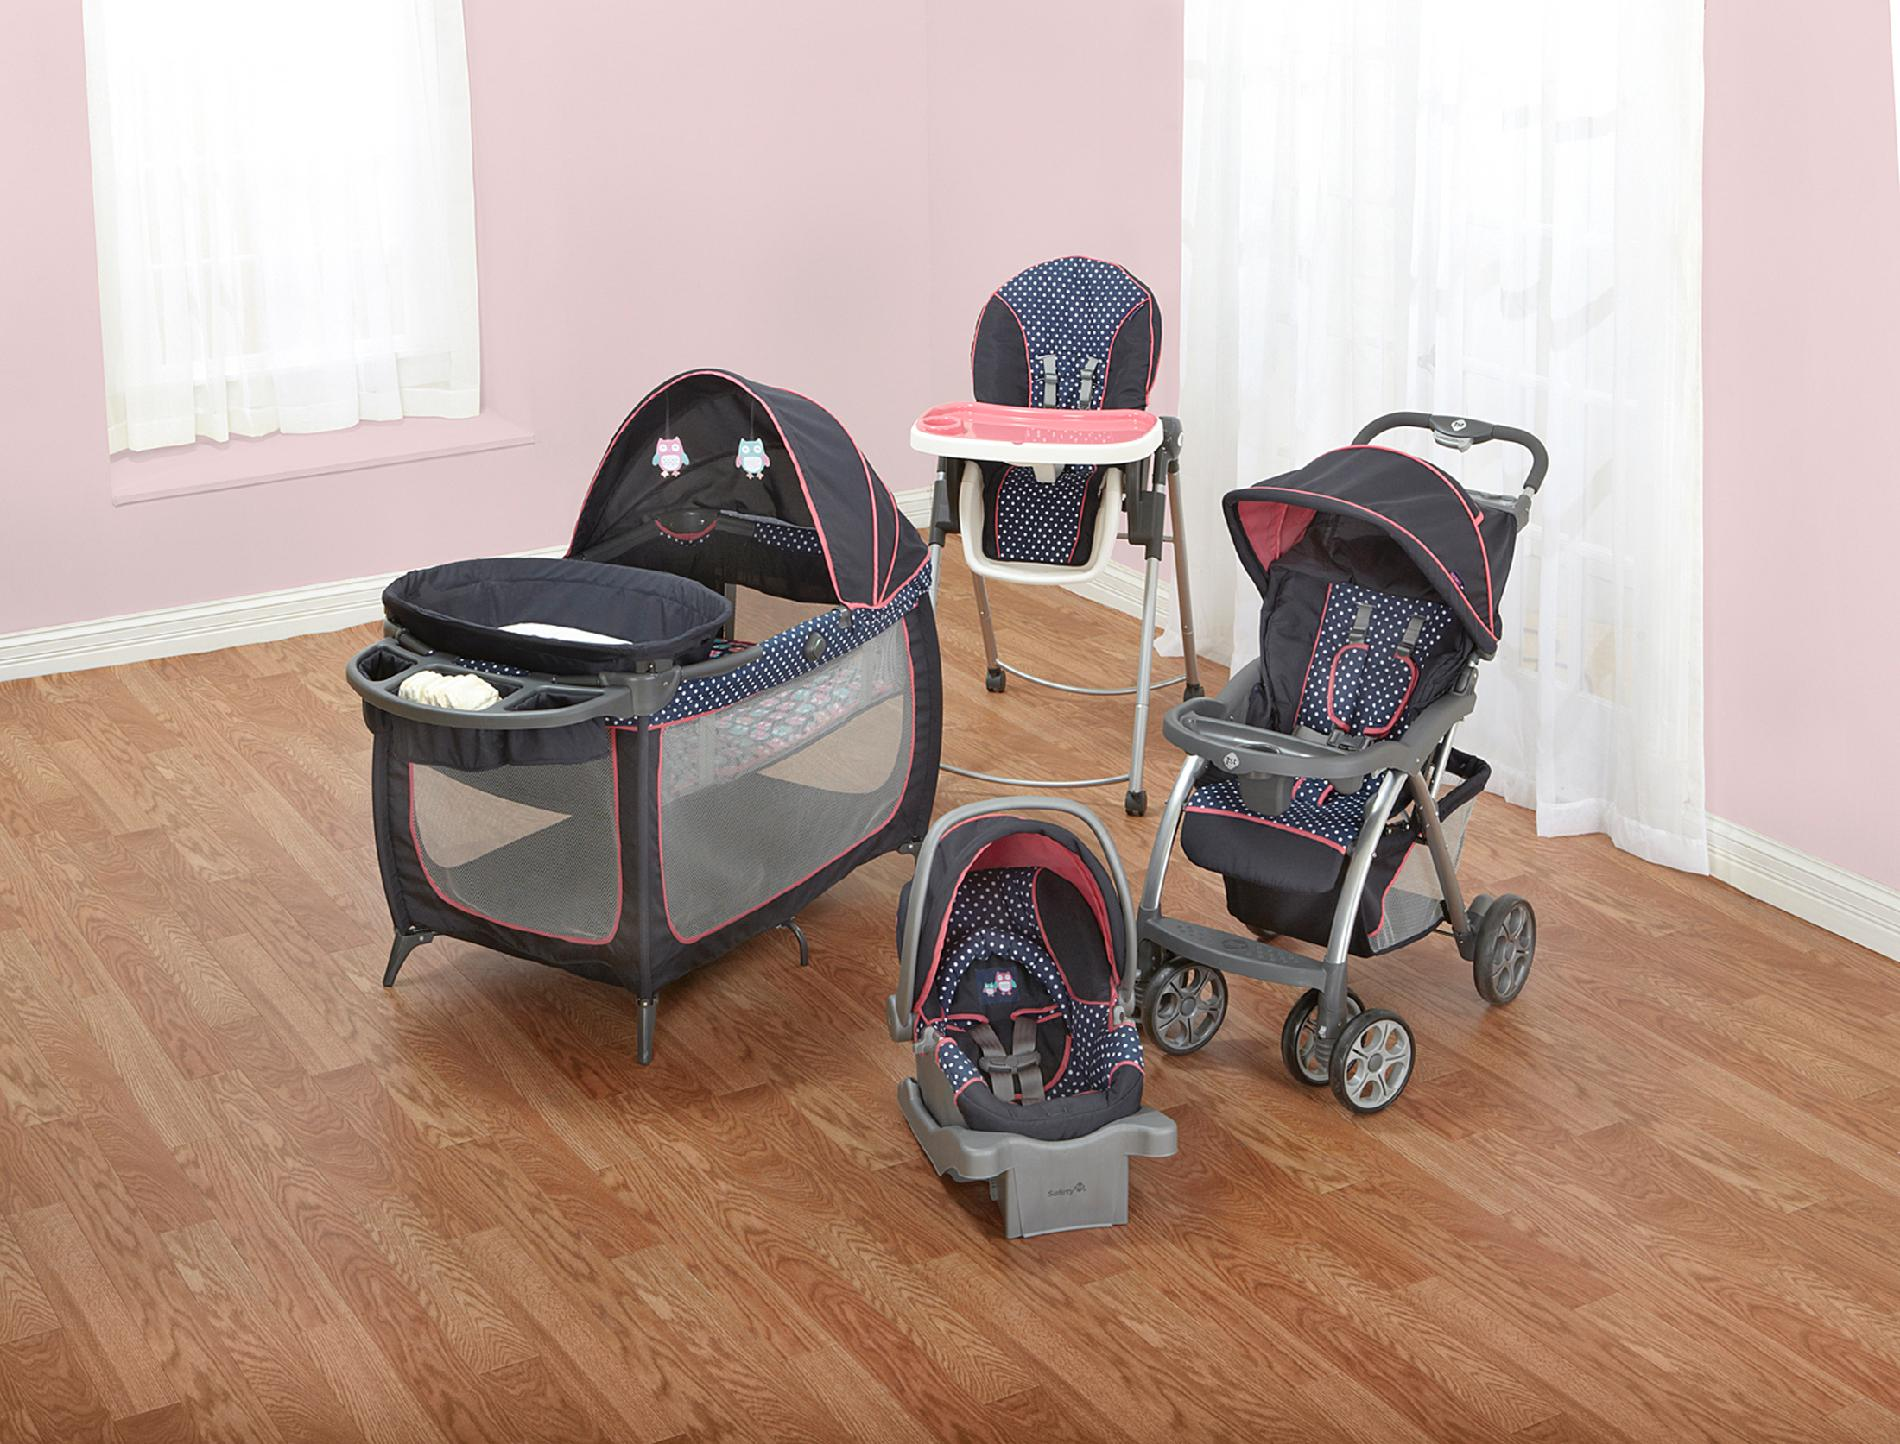 graco winnie the pooh high chair upholstered dining chairs set of 6 carter 39s cute as a hoot travel system baby gear